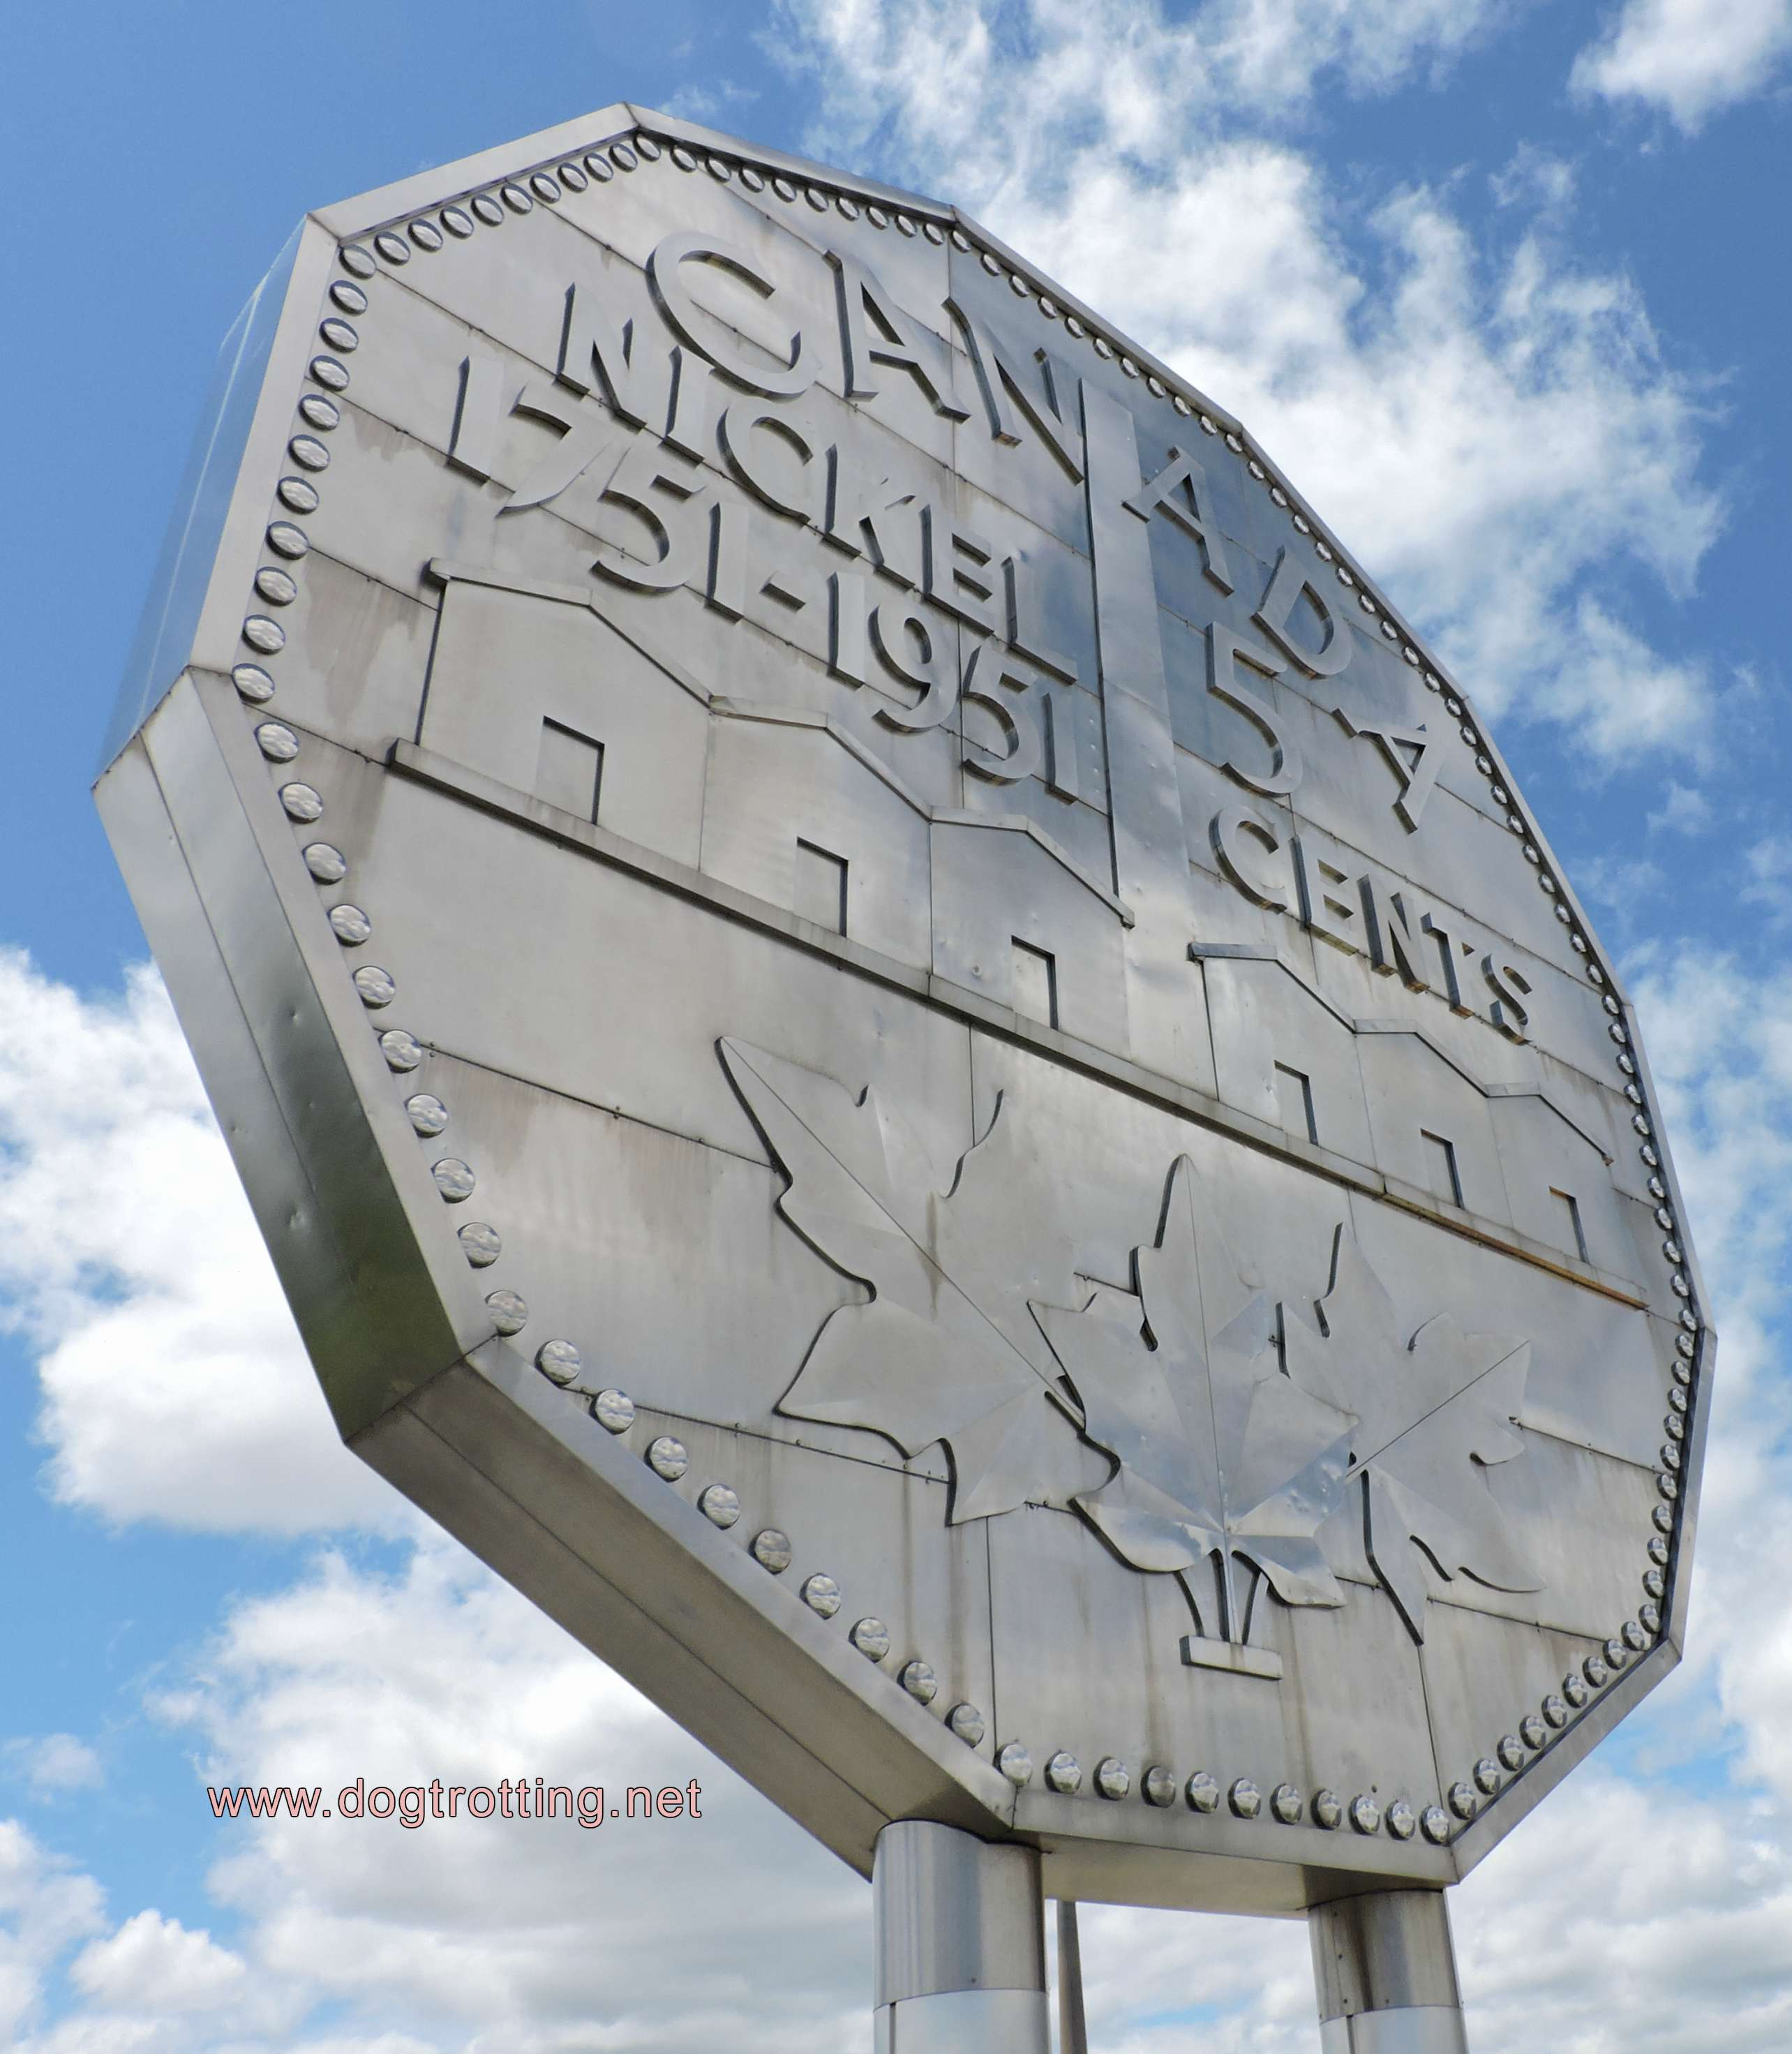 The Big Nickel Sudbury Ontario